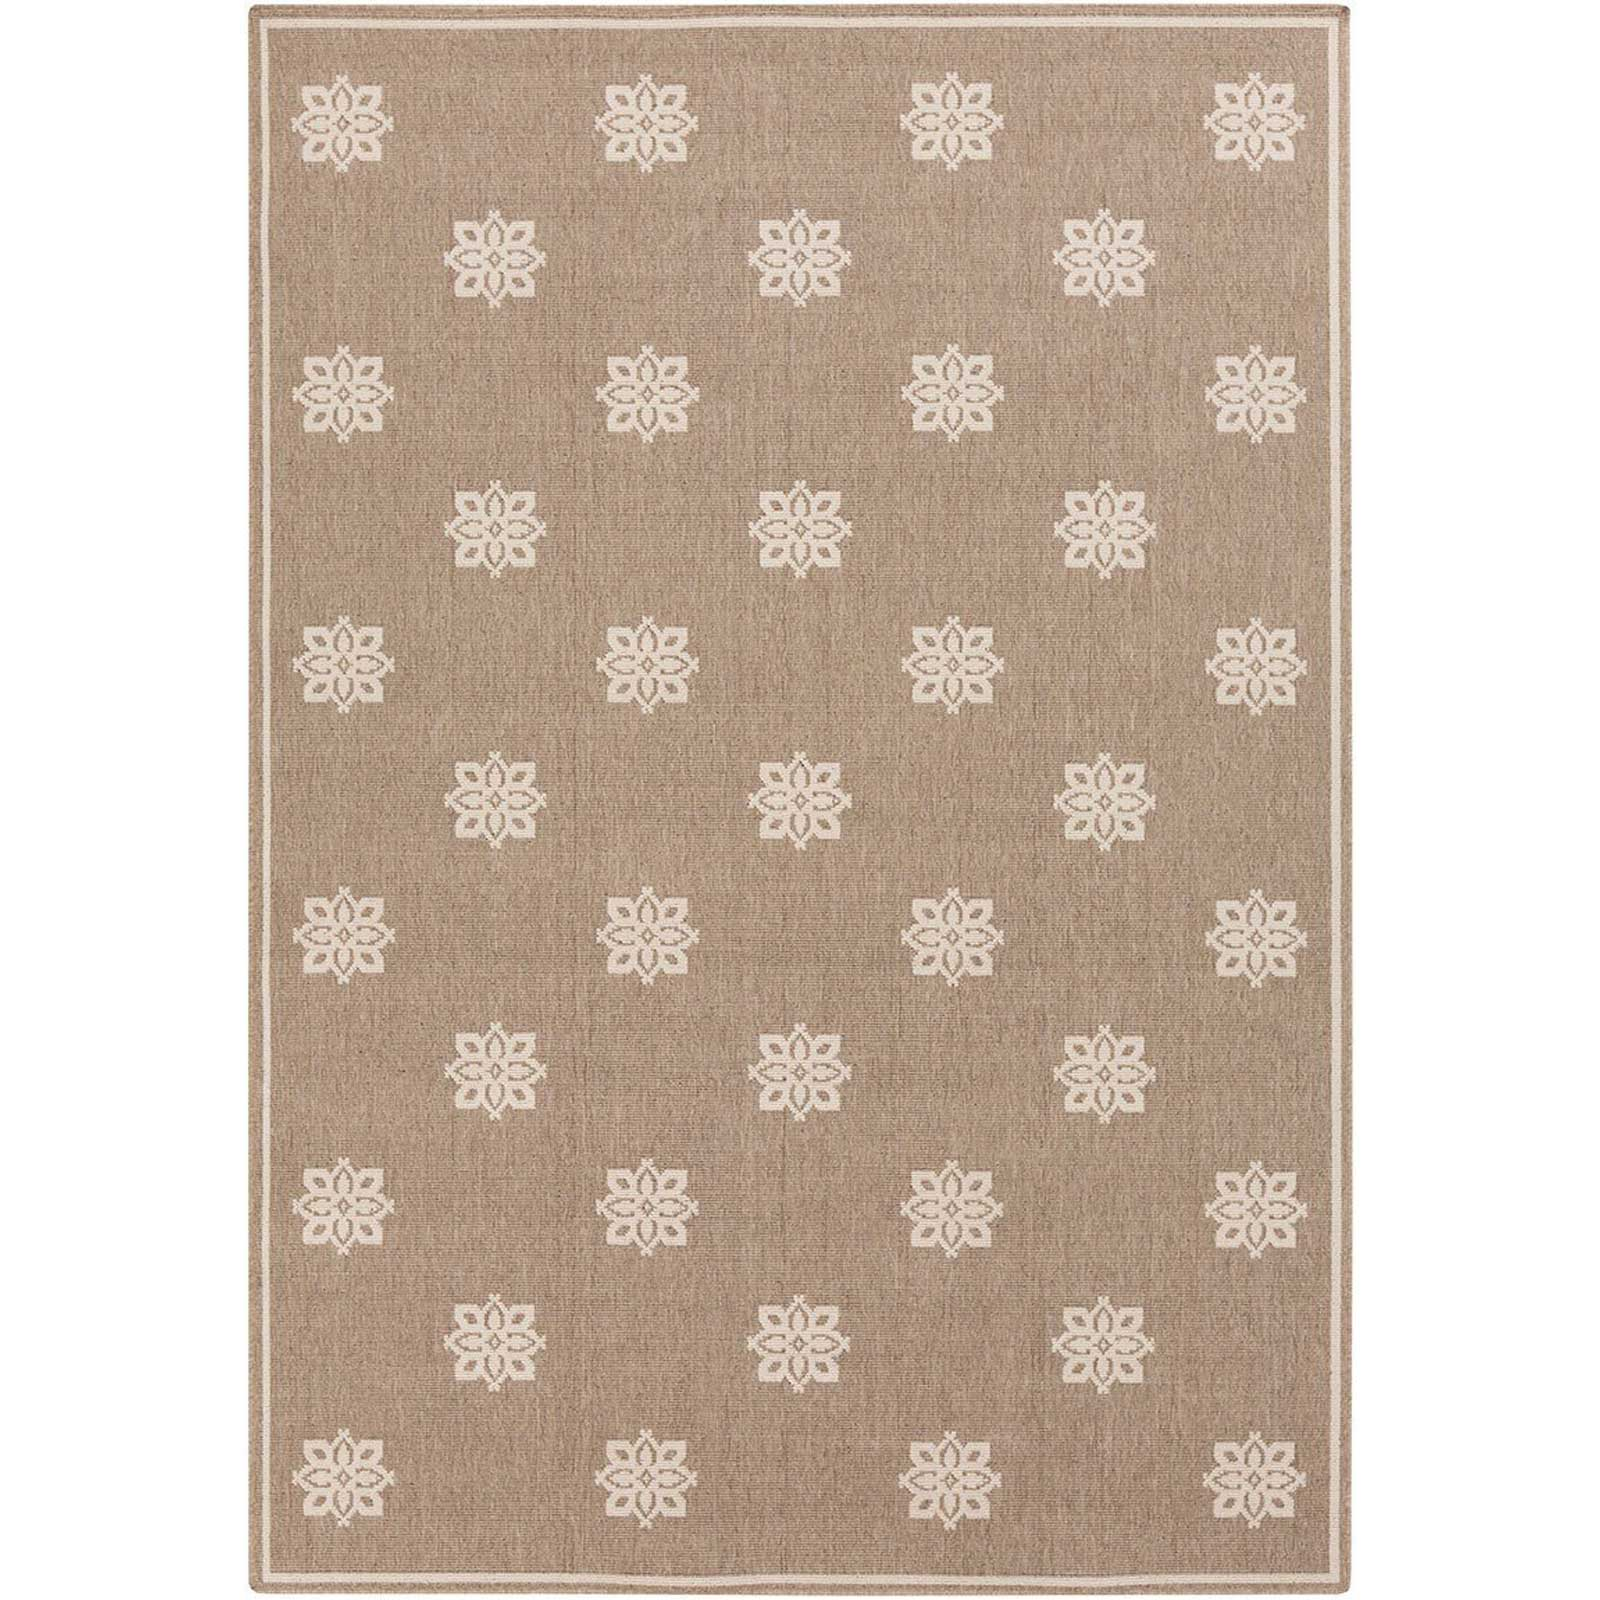 Alfresco Finish Taupe/Beige Area Rug